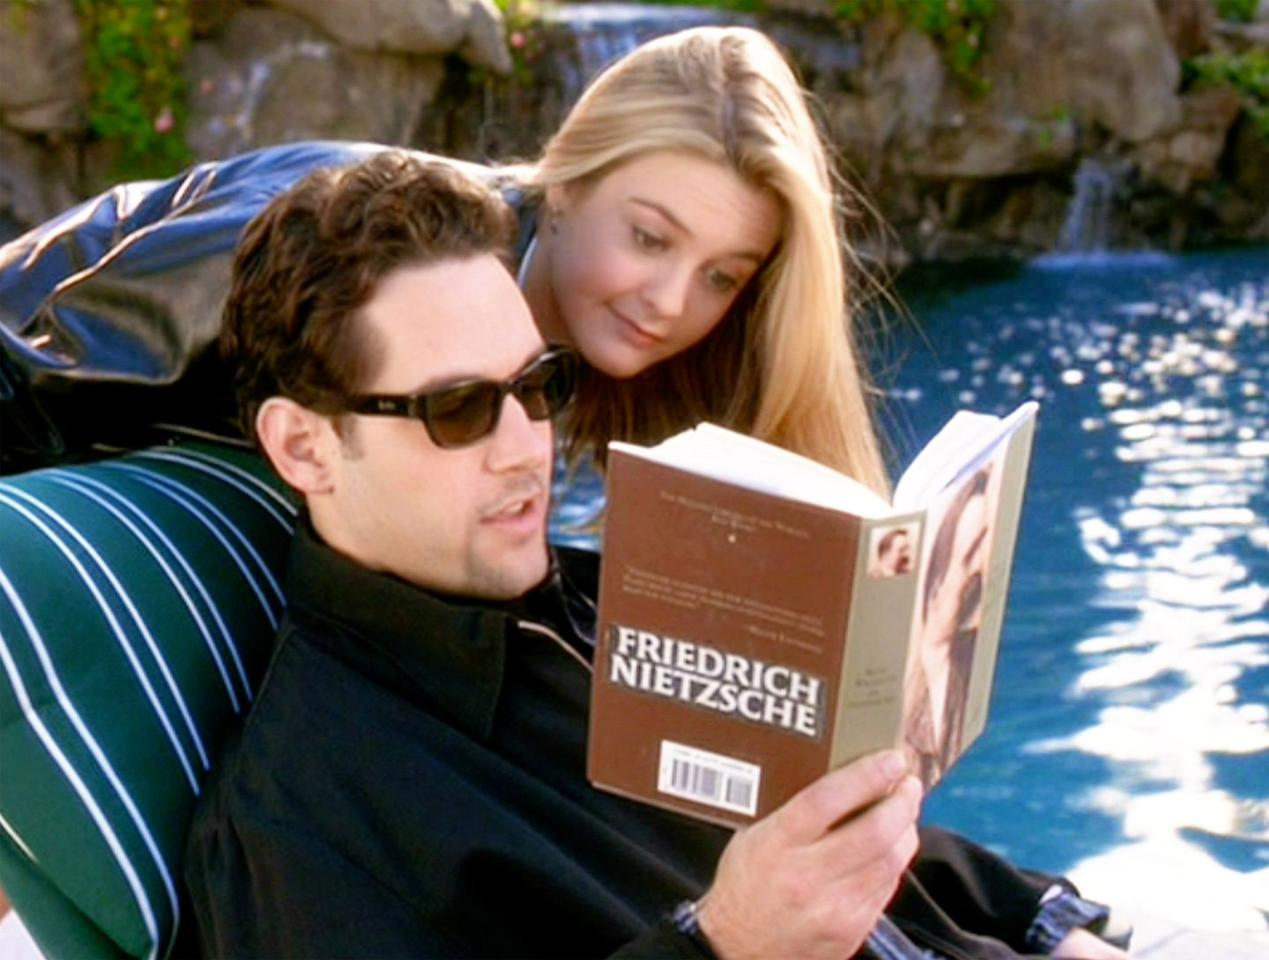 """<p>Cher (Alicia Silverstone) is the most popular girl in her high school. When she meets new student Tai (Brittany Murphy) and Tai suddenly becomes more popular than her, Cher gets a new perspective on life—while also falling for her stepbrother Josh (Paul Rudd).</p><p><a class=""""body-btn-link"""" href=""""https://www.amazon.com/Clueless-Alicia-Silverstone/dp/B001JYIJAY/?tag=syn-yahoo-20&ascsubtag=%5Bartid%7C10051.g.32474146%5Bsrc%7Cyahoo-us"""" target=""""_blank"""">Watch Now</a></p>"""